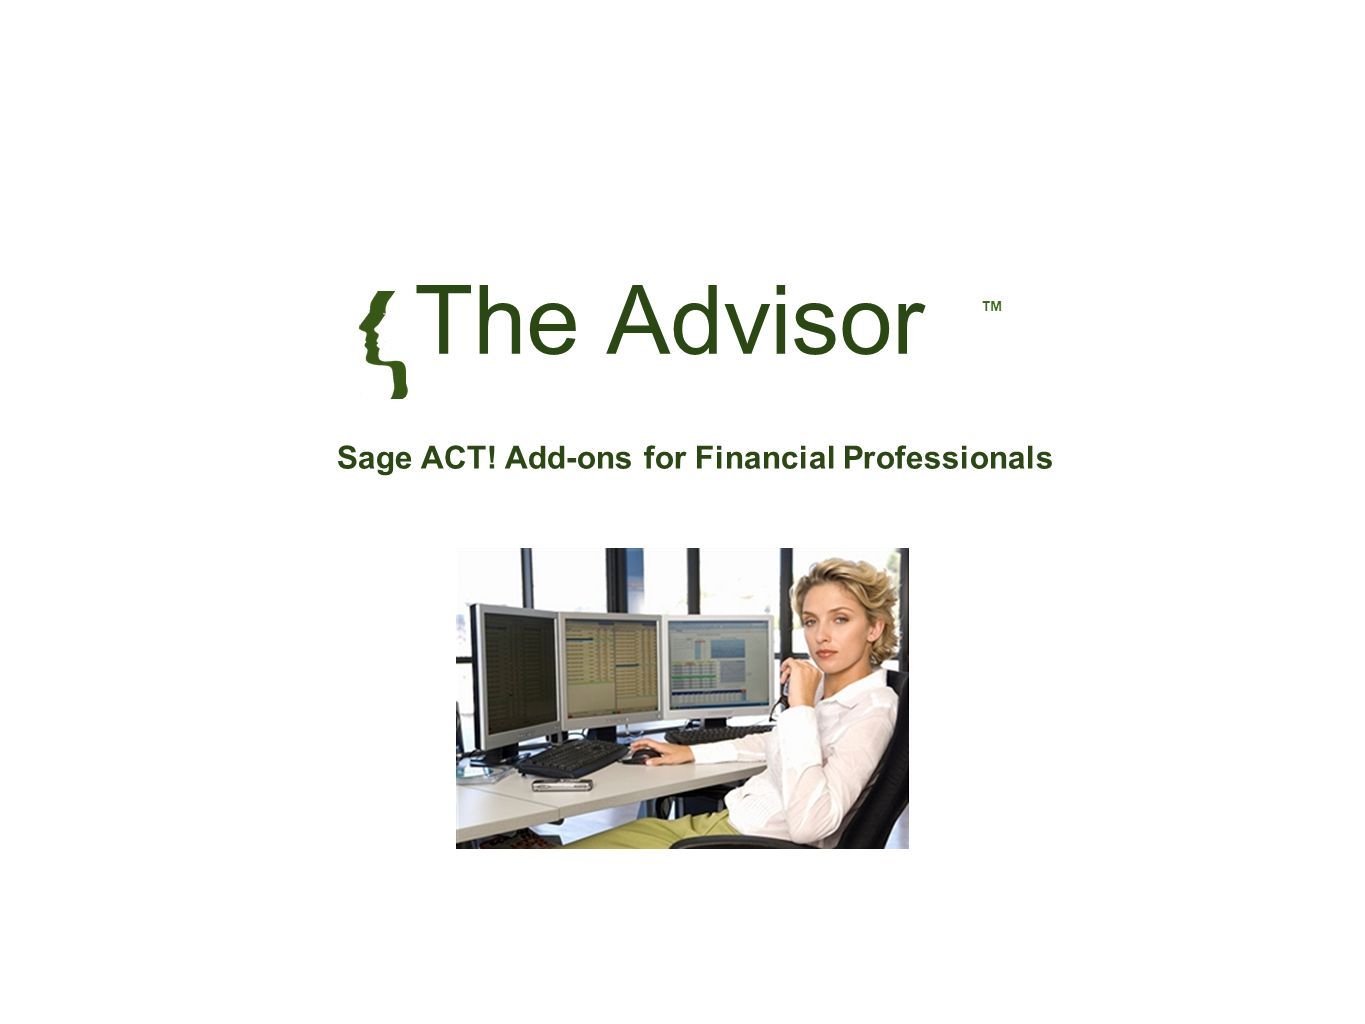 The Advisor Sage ACT! Add-ons for Financial Professionals